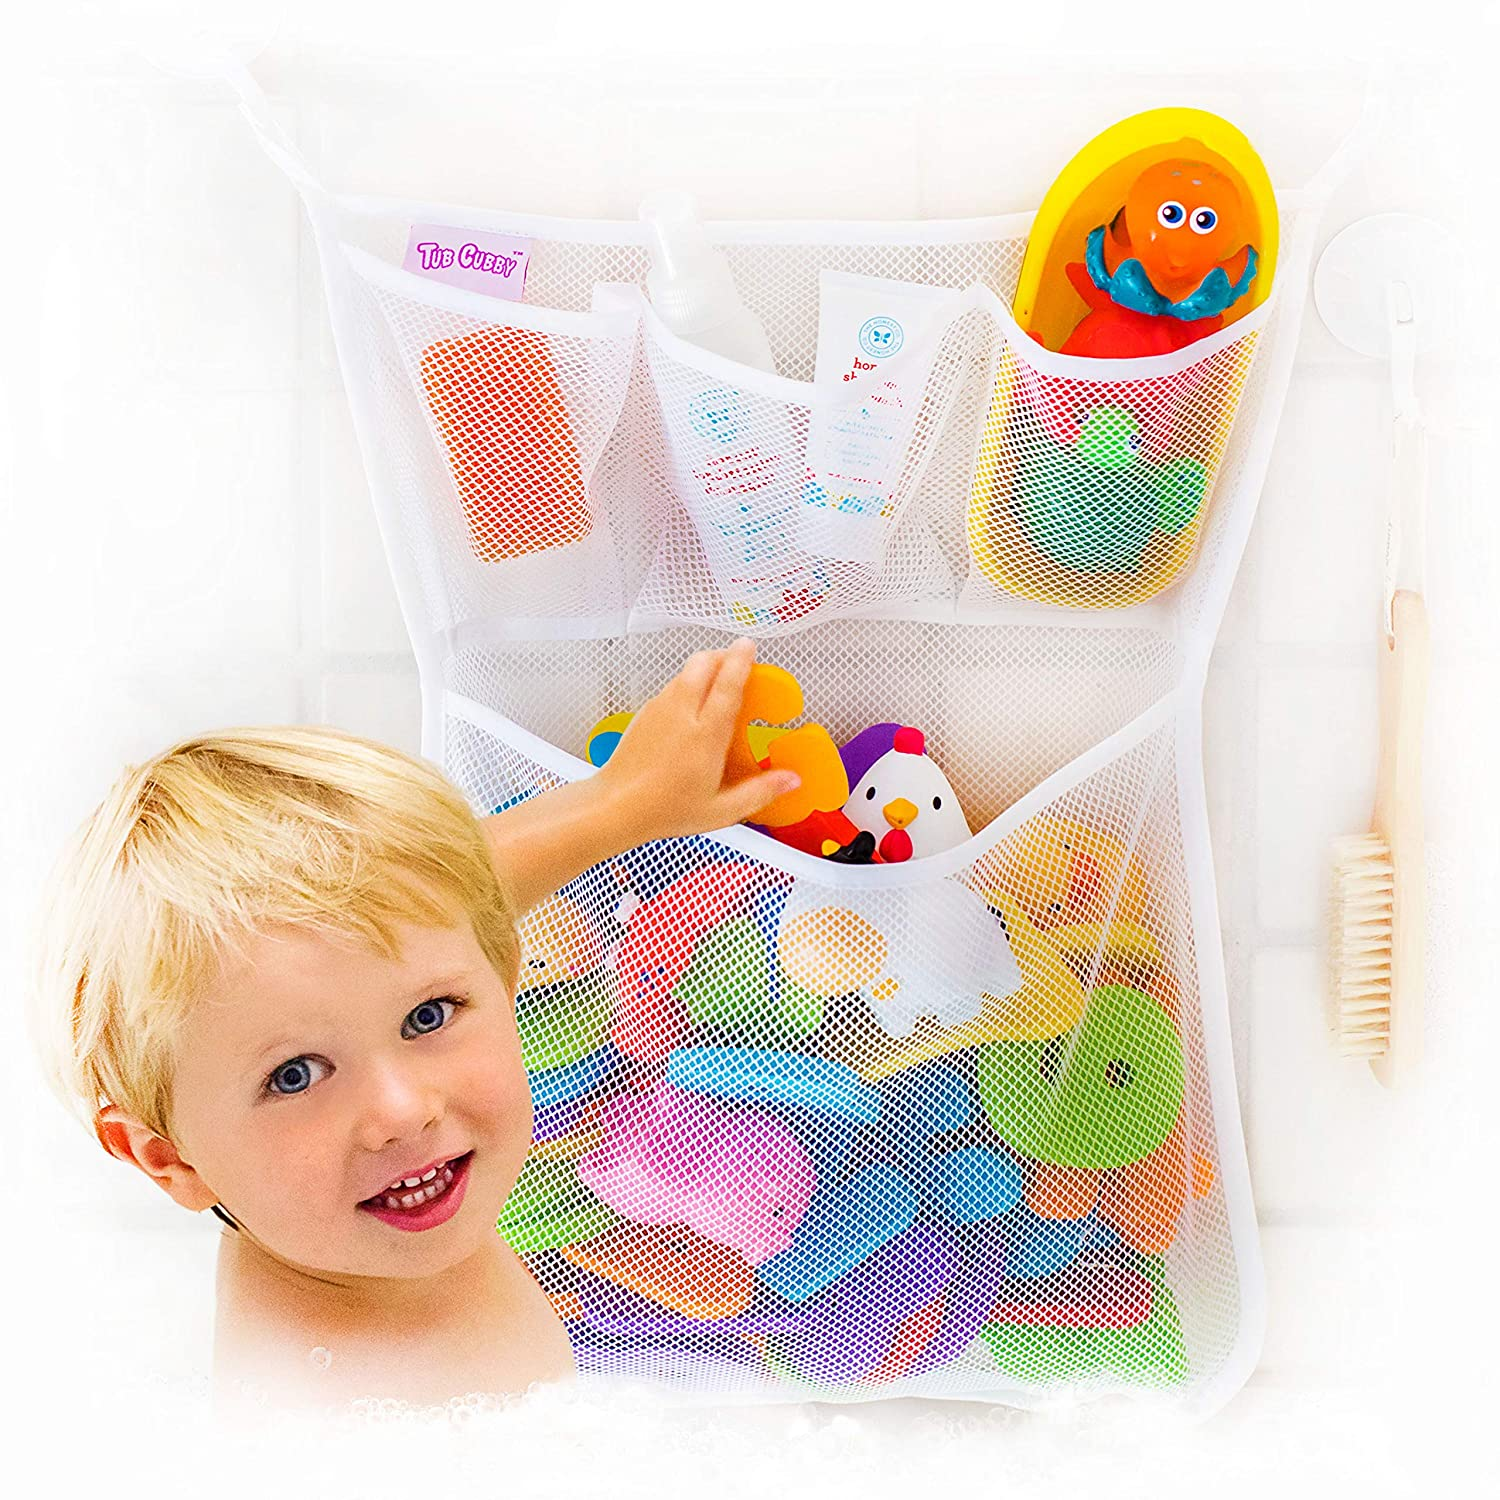 Tub Cubby Bath Toy Organizer + Ducky - Mold Resistant Mesh Net Bin - Baby Bathtub Game Holder with Suction & Sticker Hooks Toddler Play Bathroom Storage Tray Bag Shower Caddy - Kids CPSIA Safety Award: Toys & Games